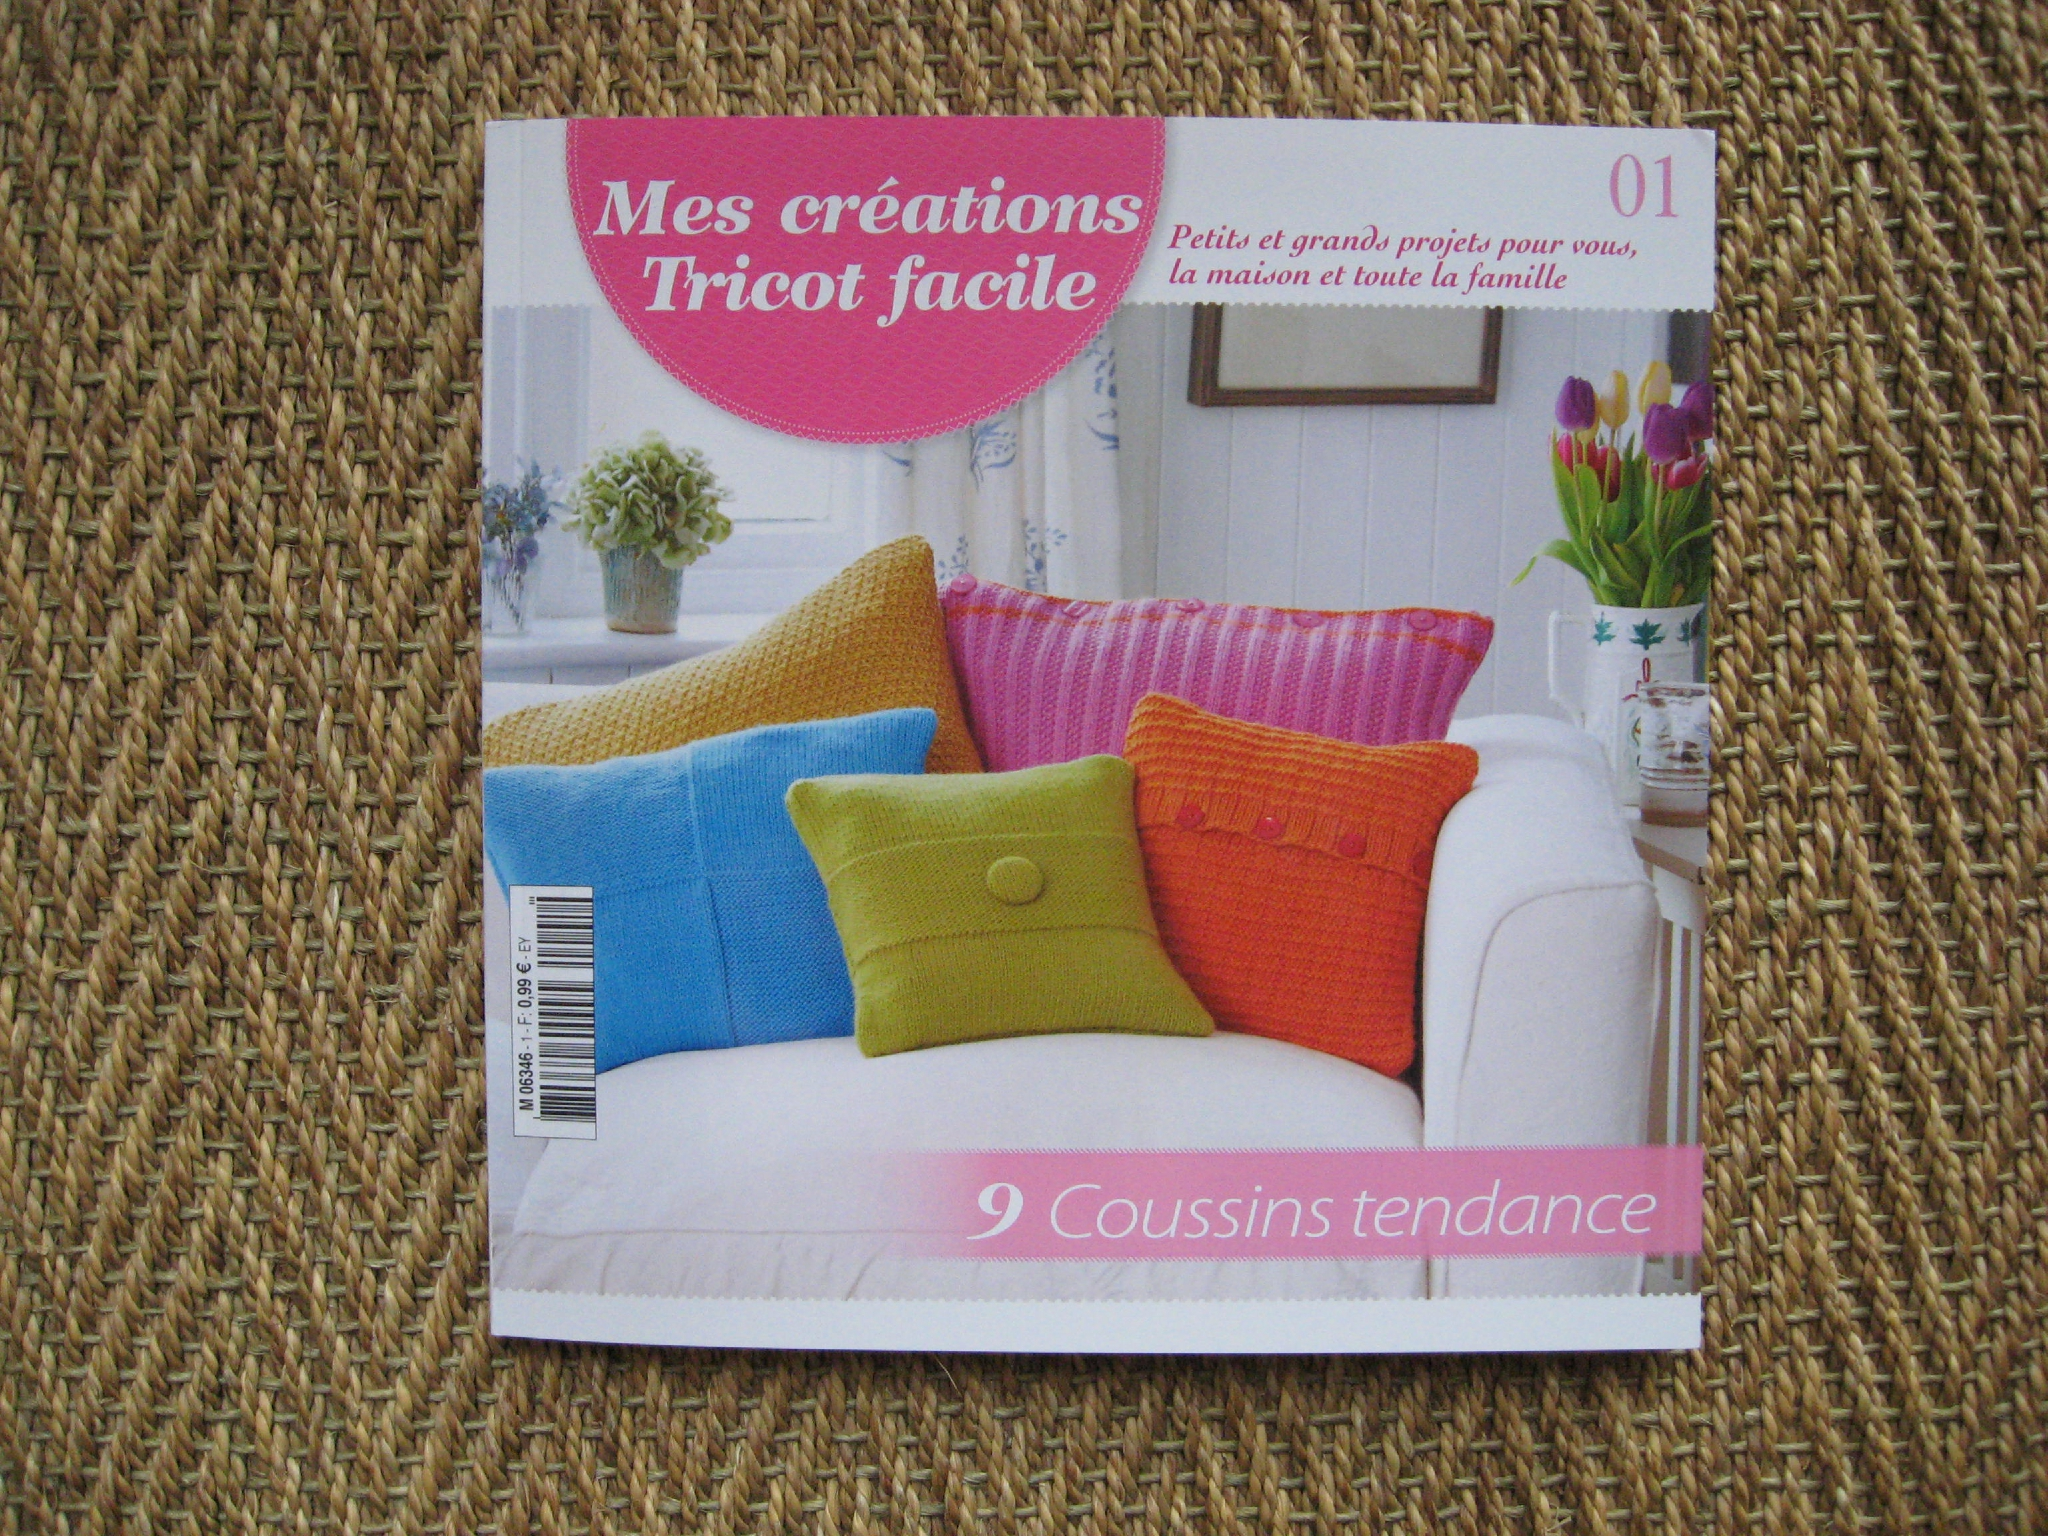 Tricot facile collection hachette